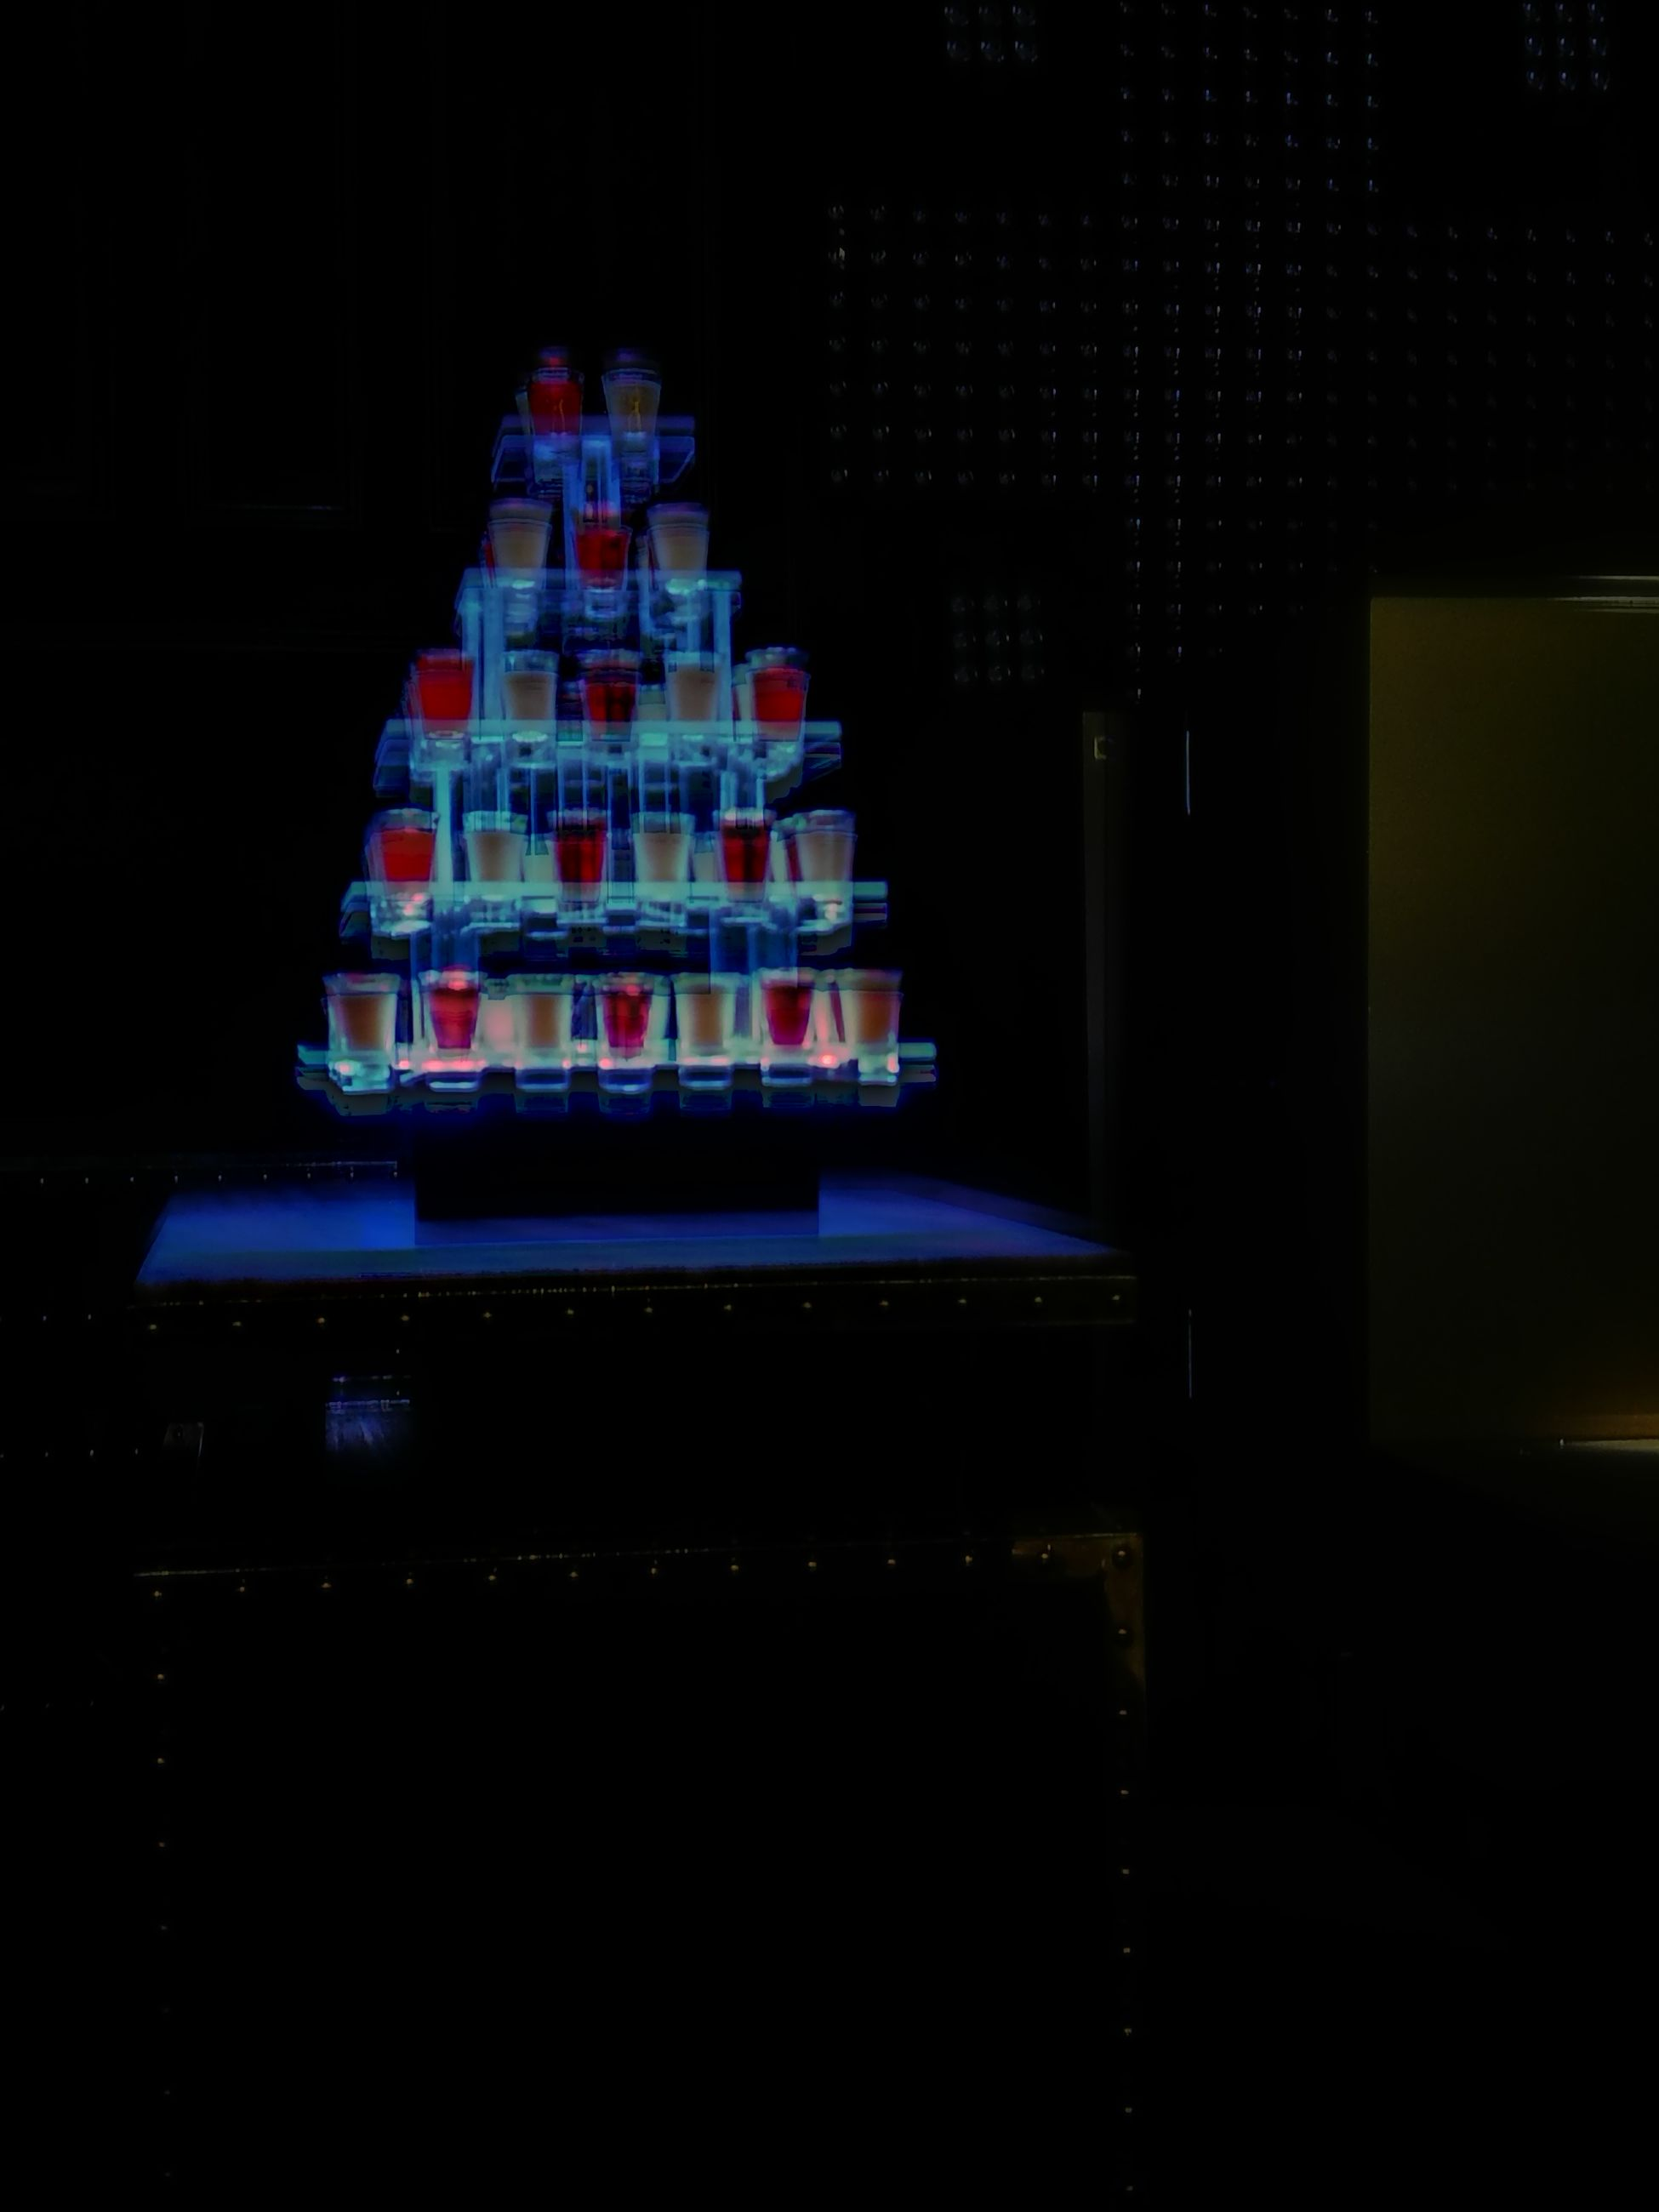 stack, indoors, no people, large group of objects, black background, night